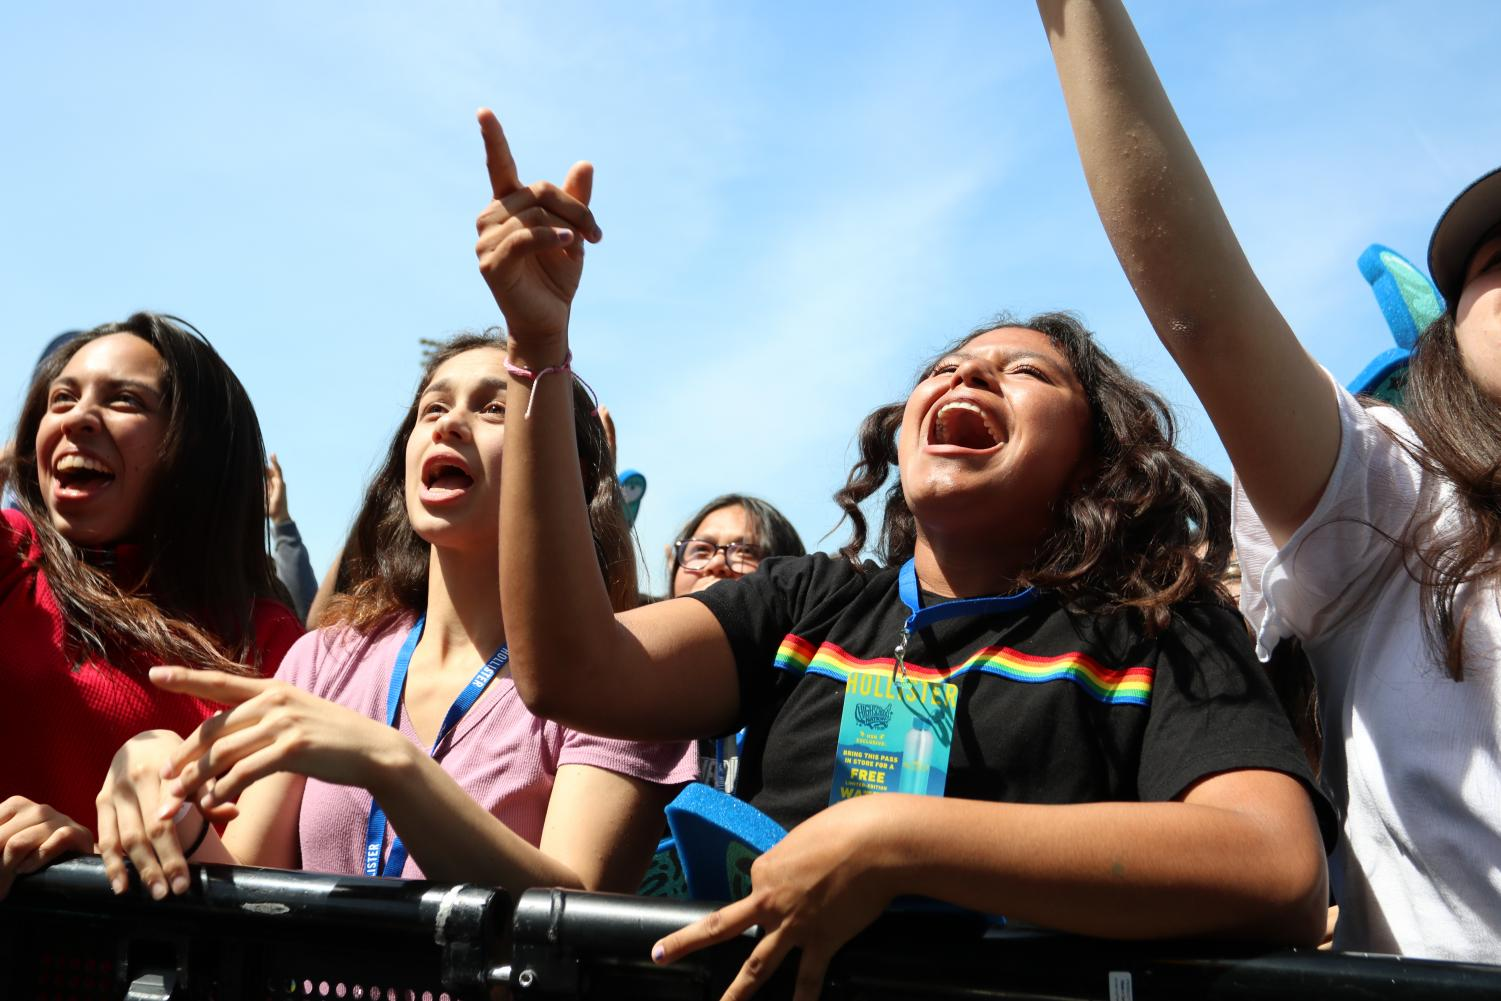 Singing+along+in+the+crowd+at+Downey%E2%80%99s+first+ever+%E2%80%9CCoachella%E2%80%9D+hosted+by+High+School+Nation%2C+Jayleen+Torres%2C+12%2C+is+with+her+friends+having+a+blast+front+and+center+on+Mar.+31.+%E2%80%9CThe+experience+was+fun%2C+outrageous%2C+and+once+in+a+lifetime%2C%E2%80%9D+Torres+said.+%E2%80%9CMeeting+the+Plain+White+T%E2%80%99s+was+one+of+my+favorite+parts+and+just+being+able+to+have+fun+with+my+friends.%E2%80%9D+